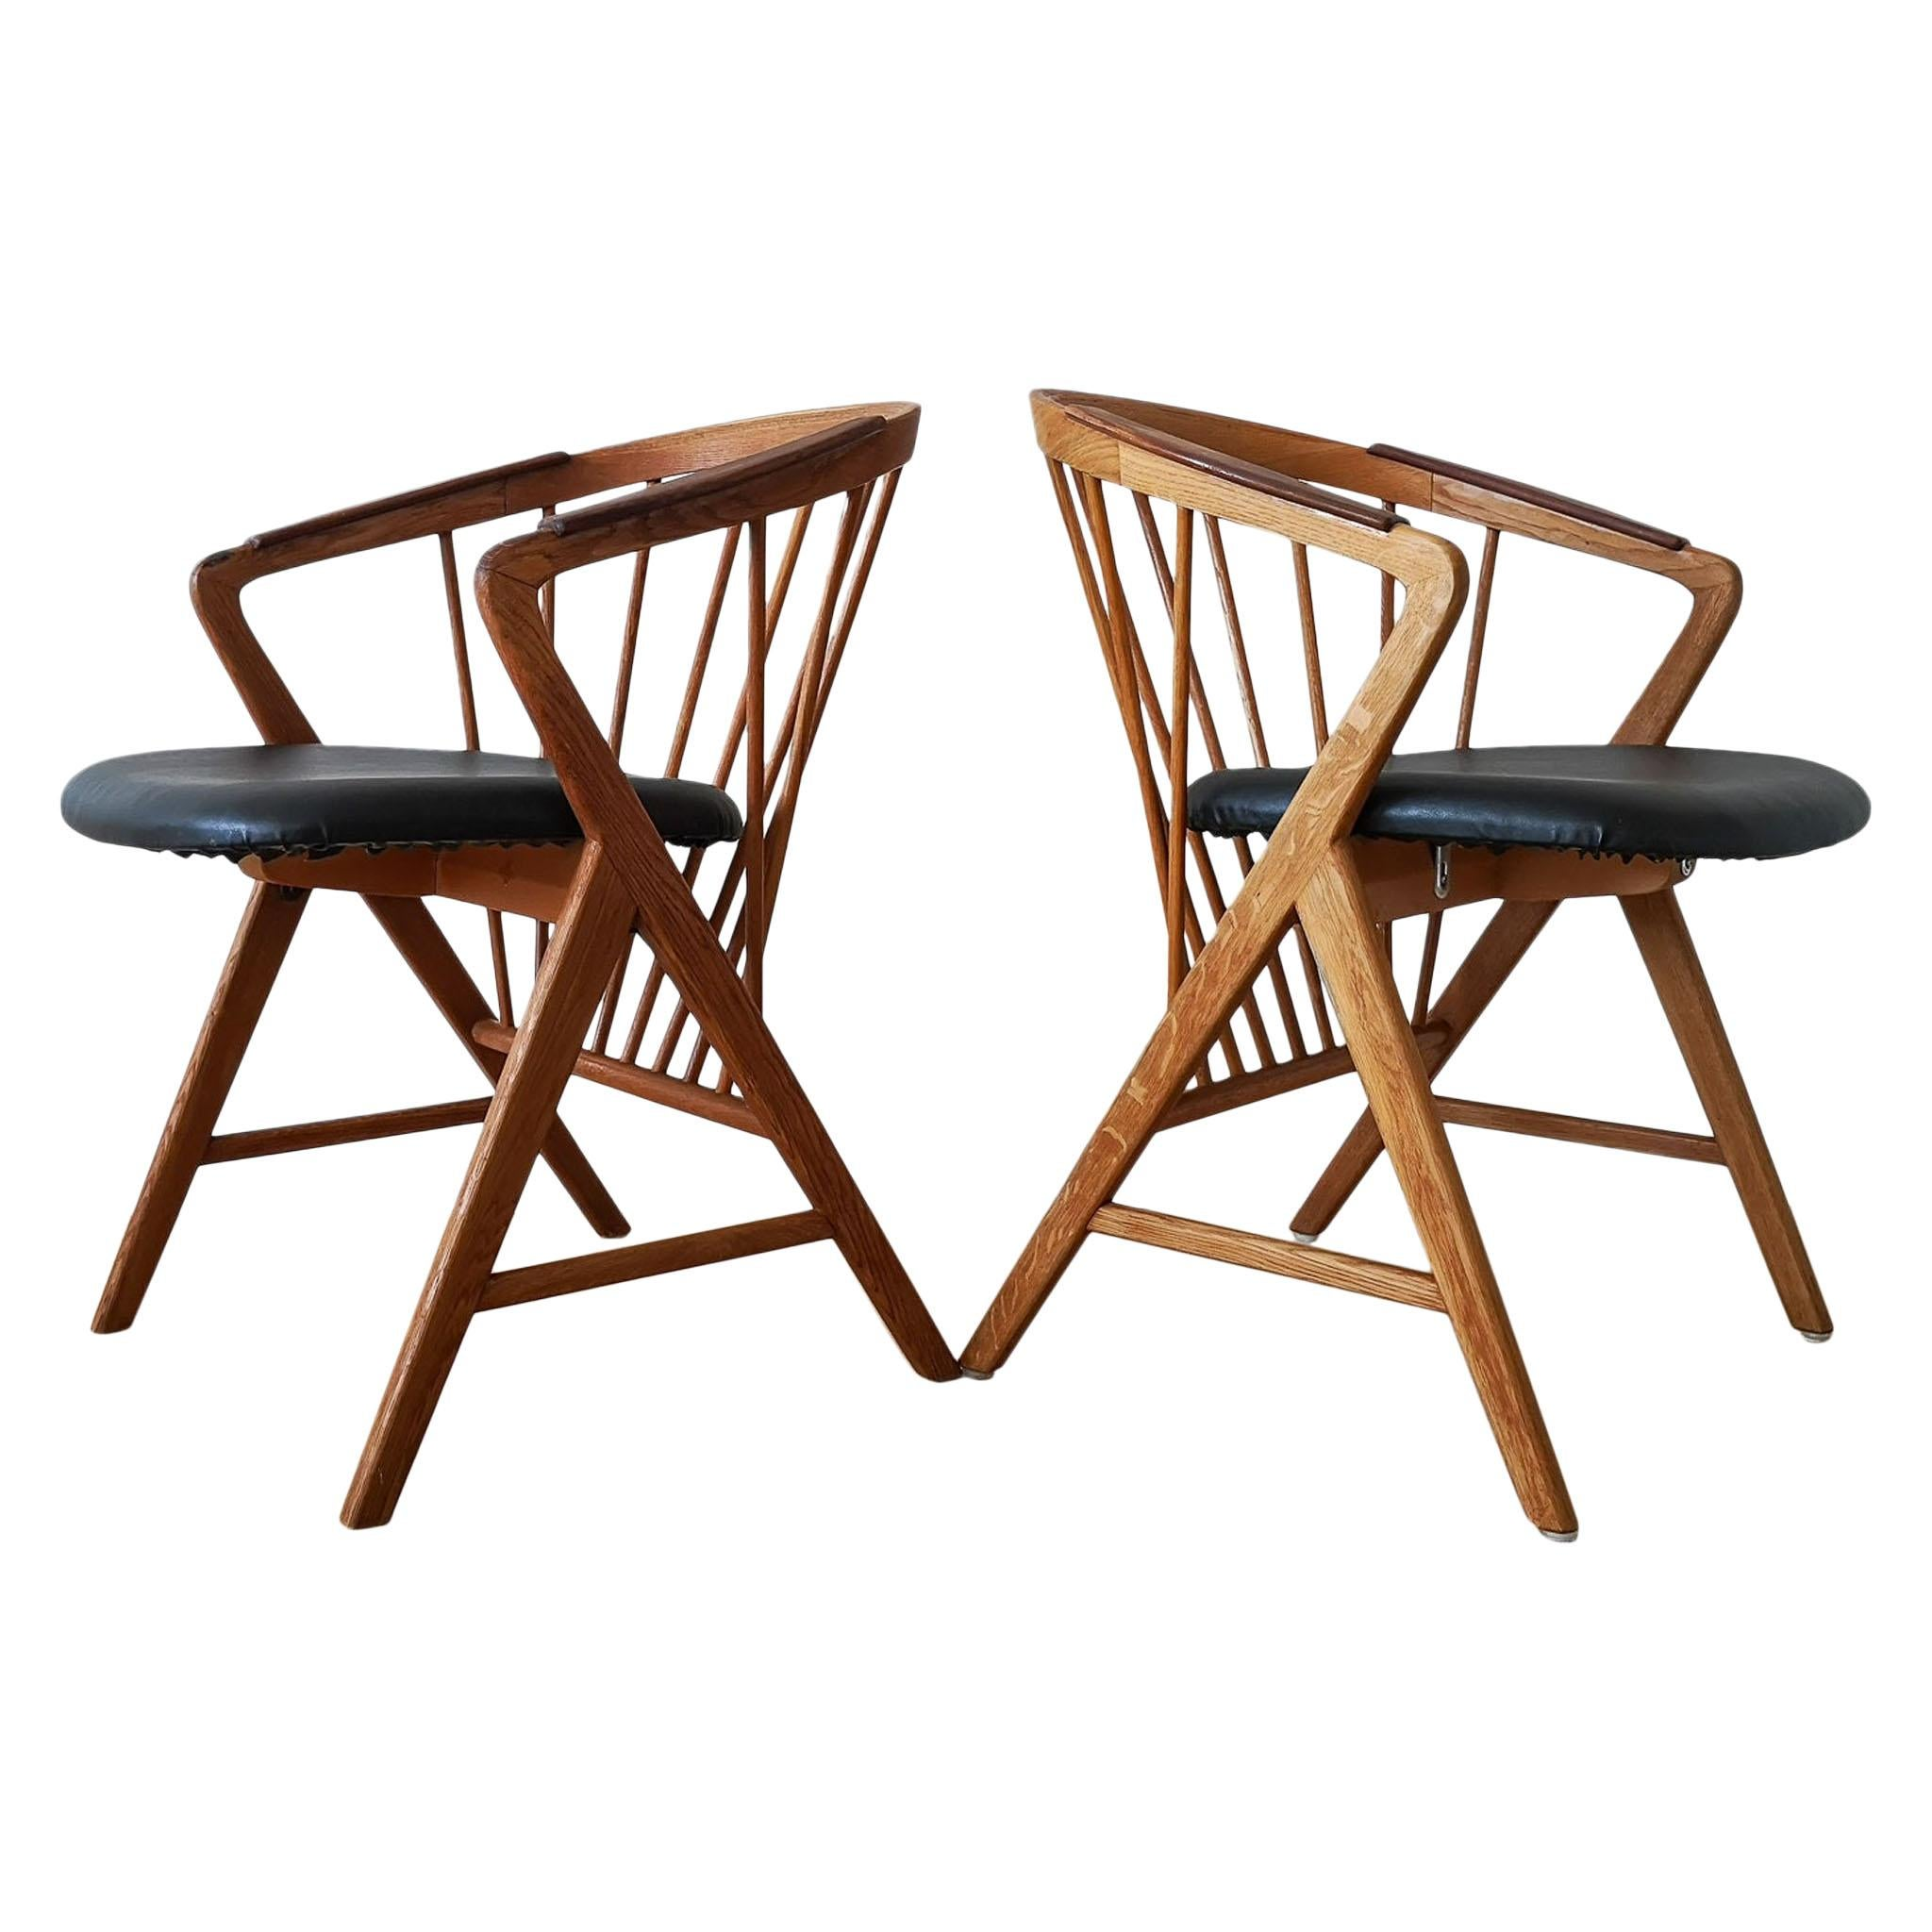 Midcentury Pair Of Oak Or Teak Easy Chair Ikea Bengt Ruda Sierra Sweden